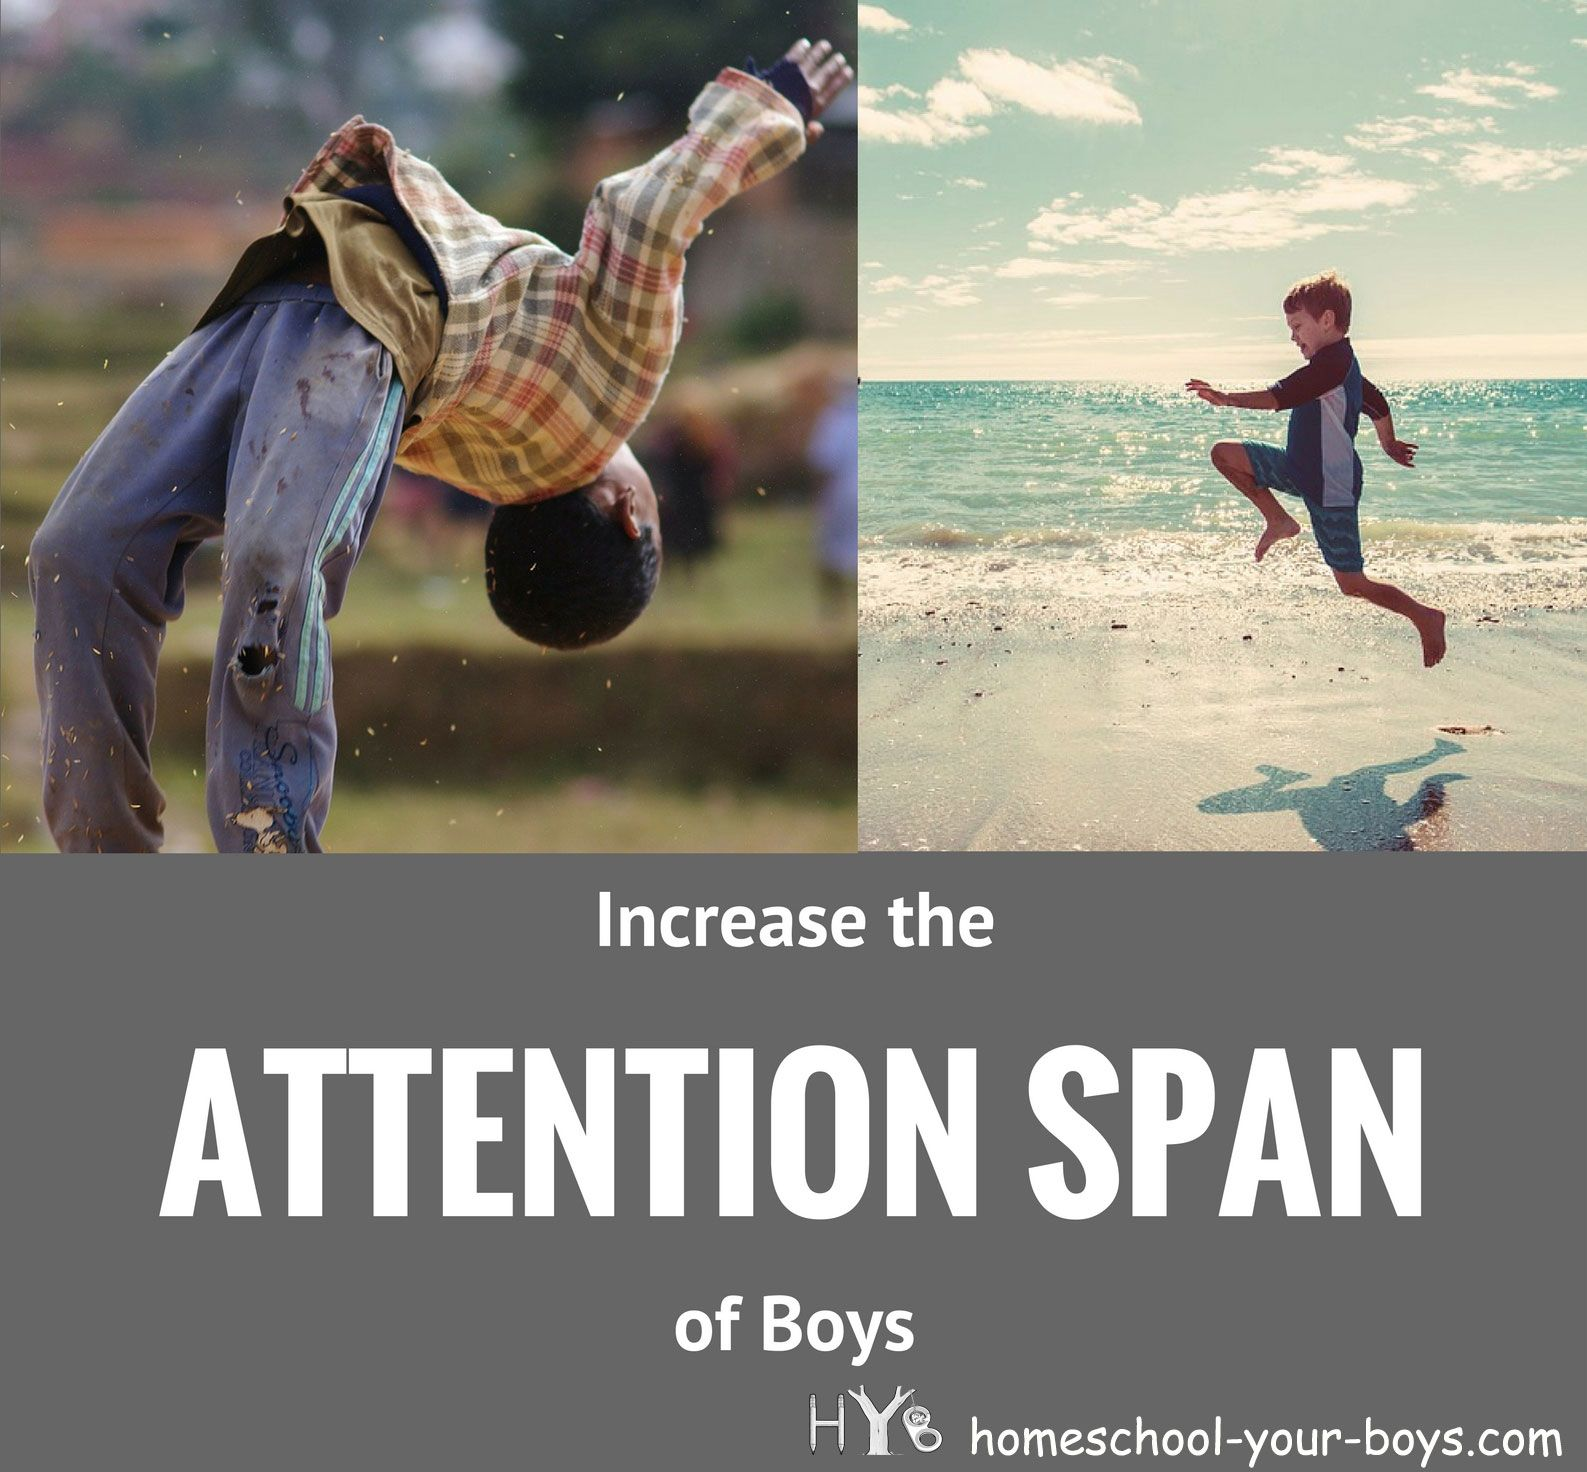 How To Increase The Attention Span Of Boys